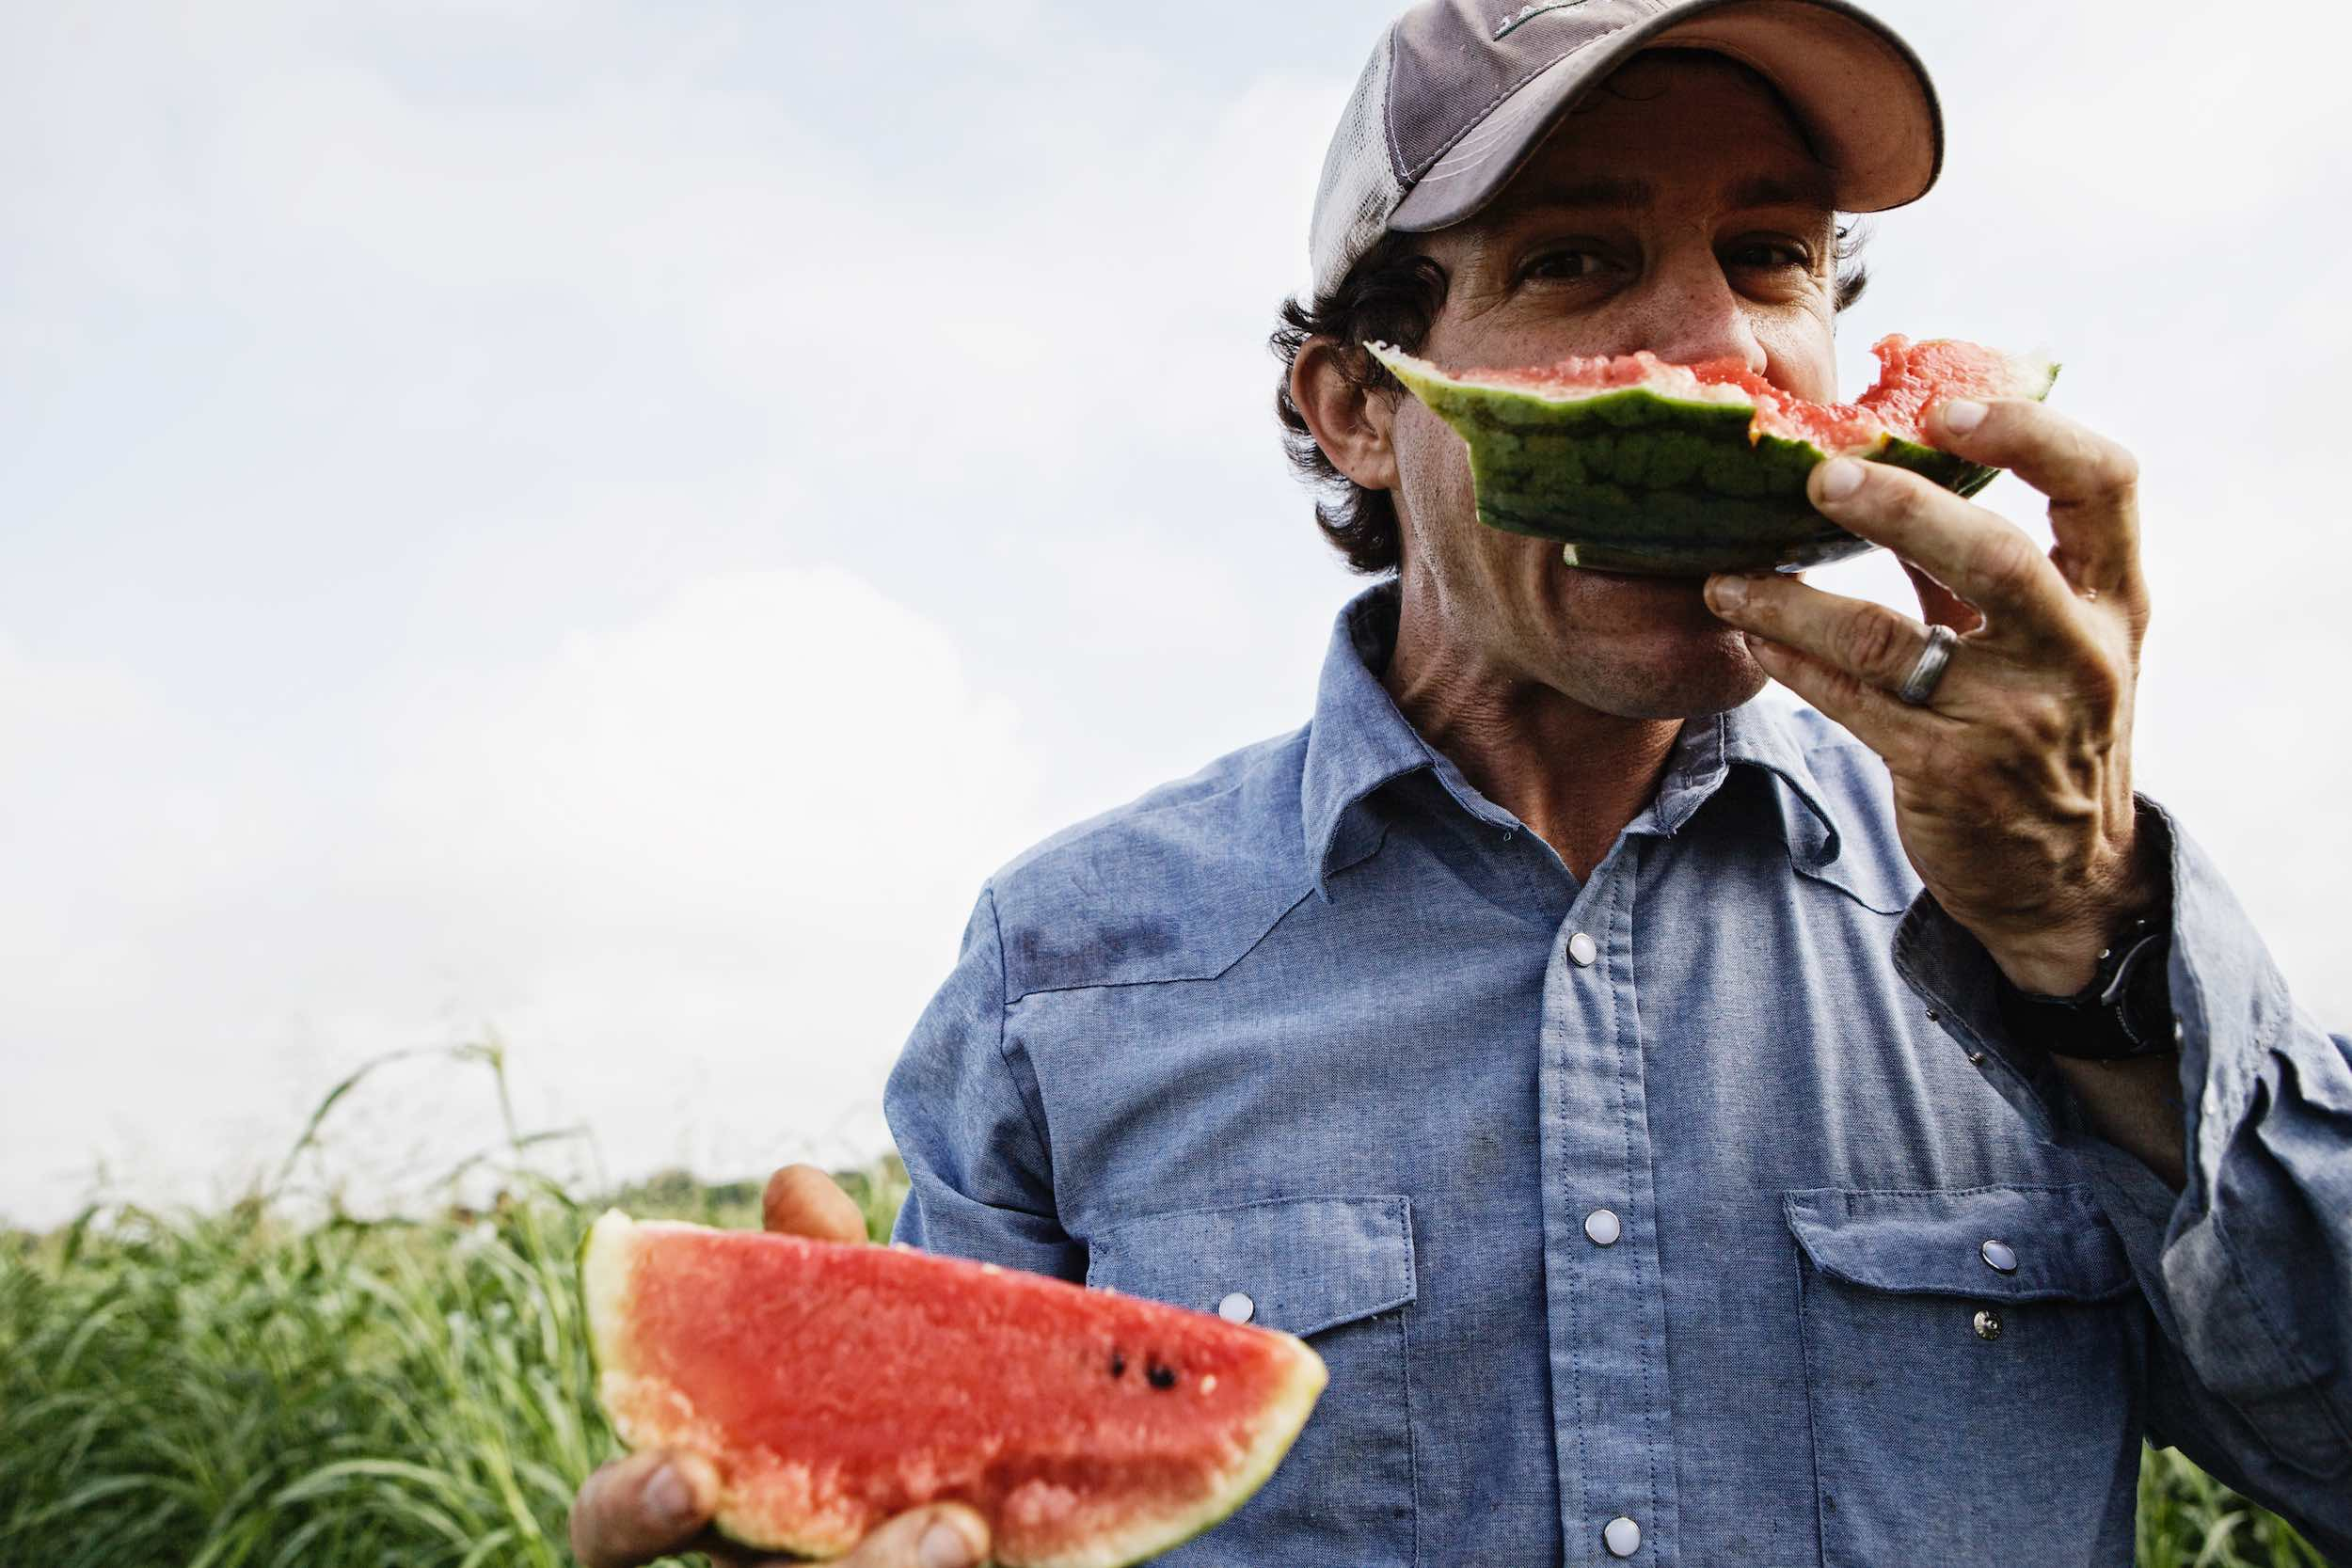 Jody Horton Photography - Farmer enjoying fresh watermelon outside.